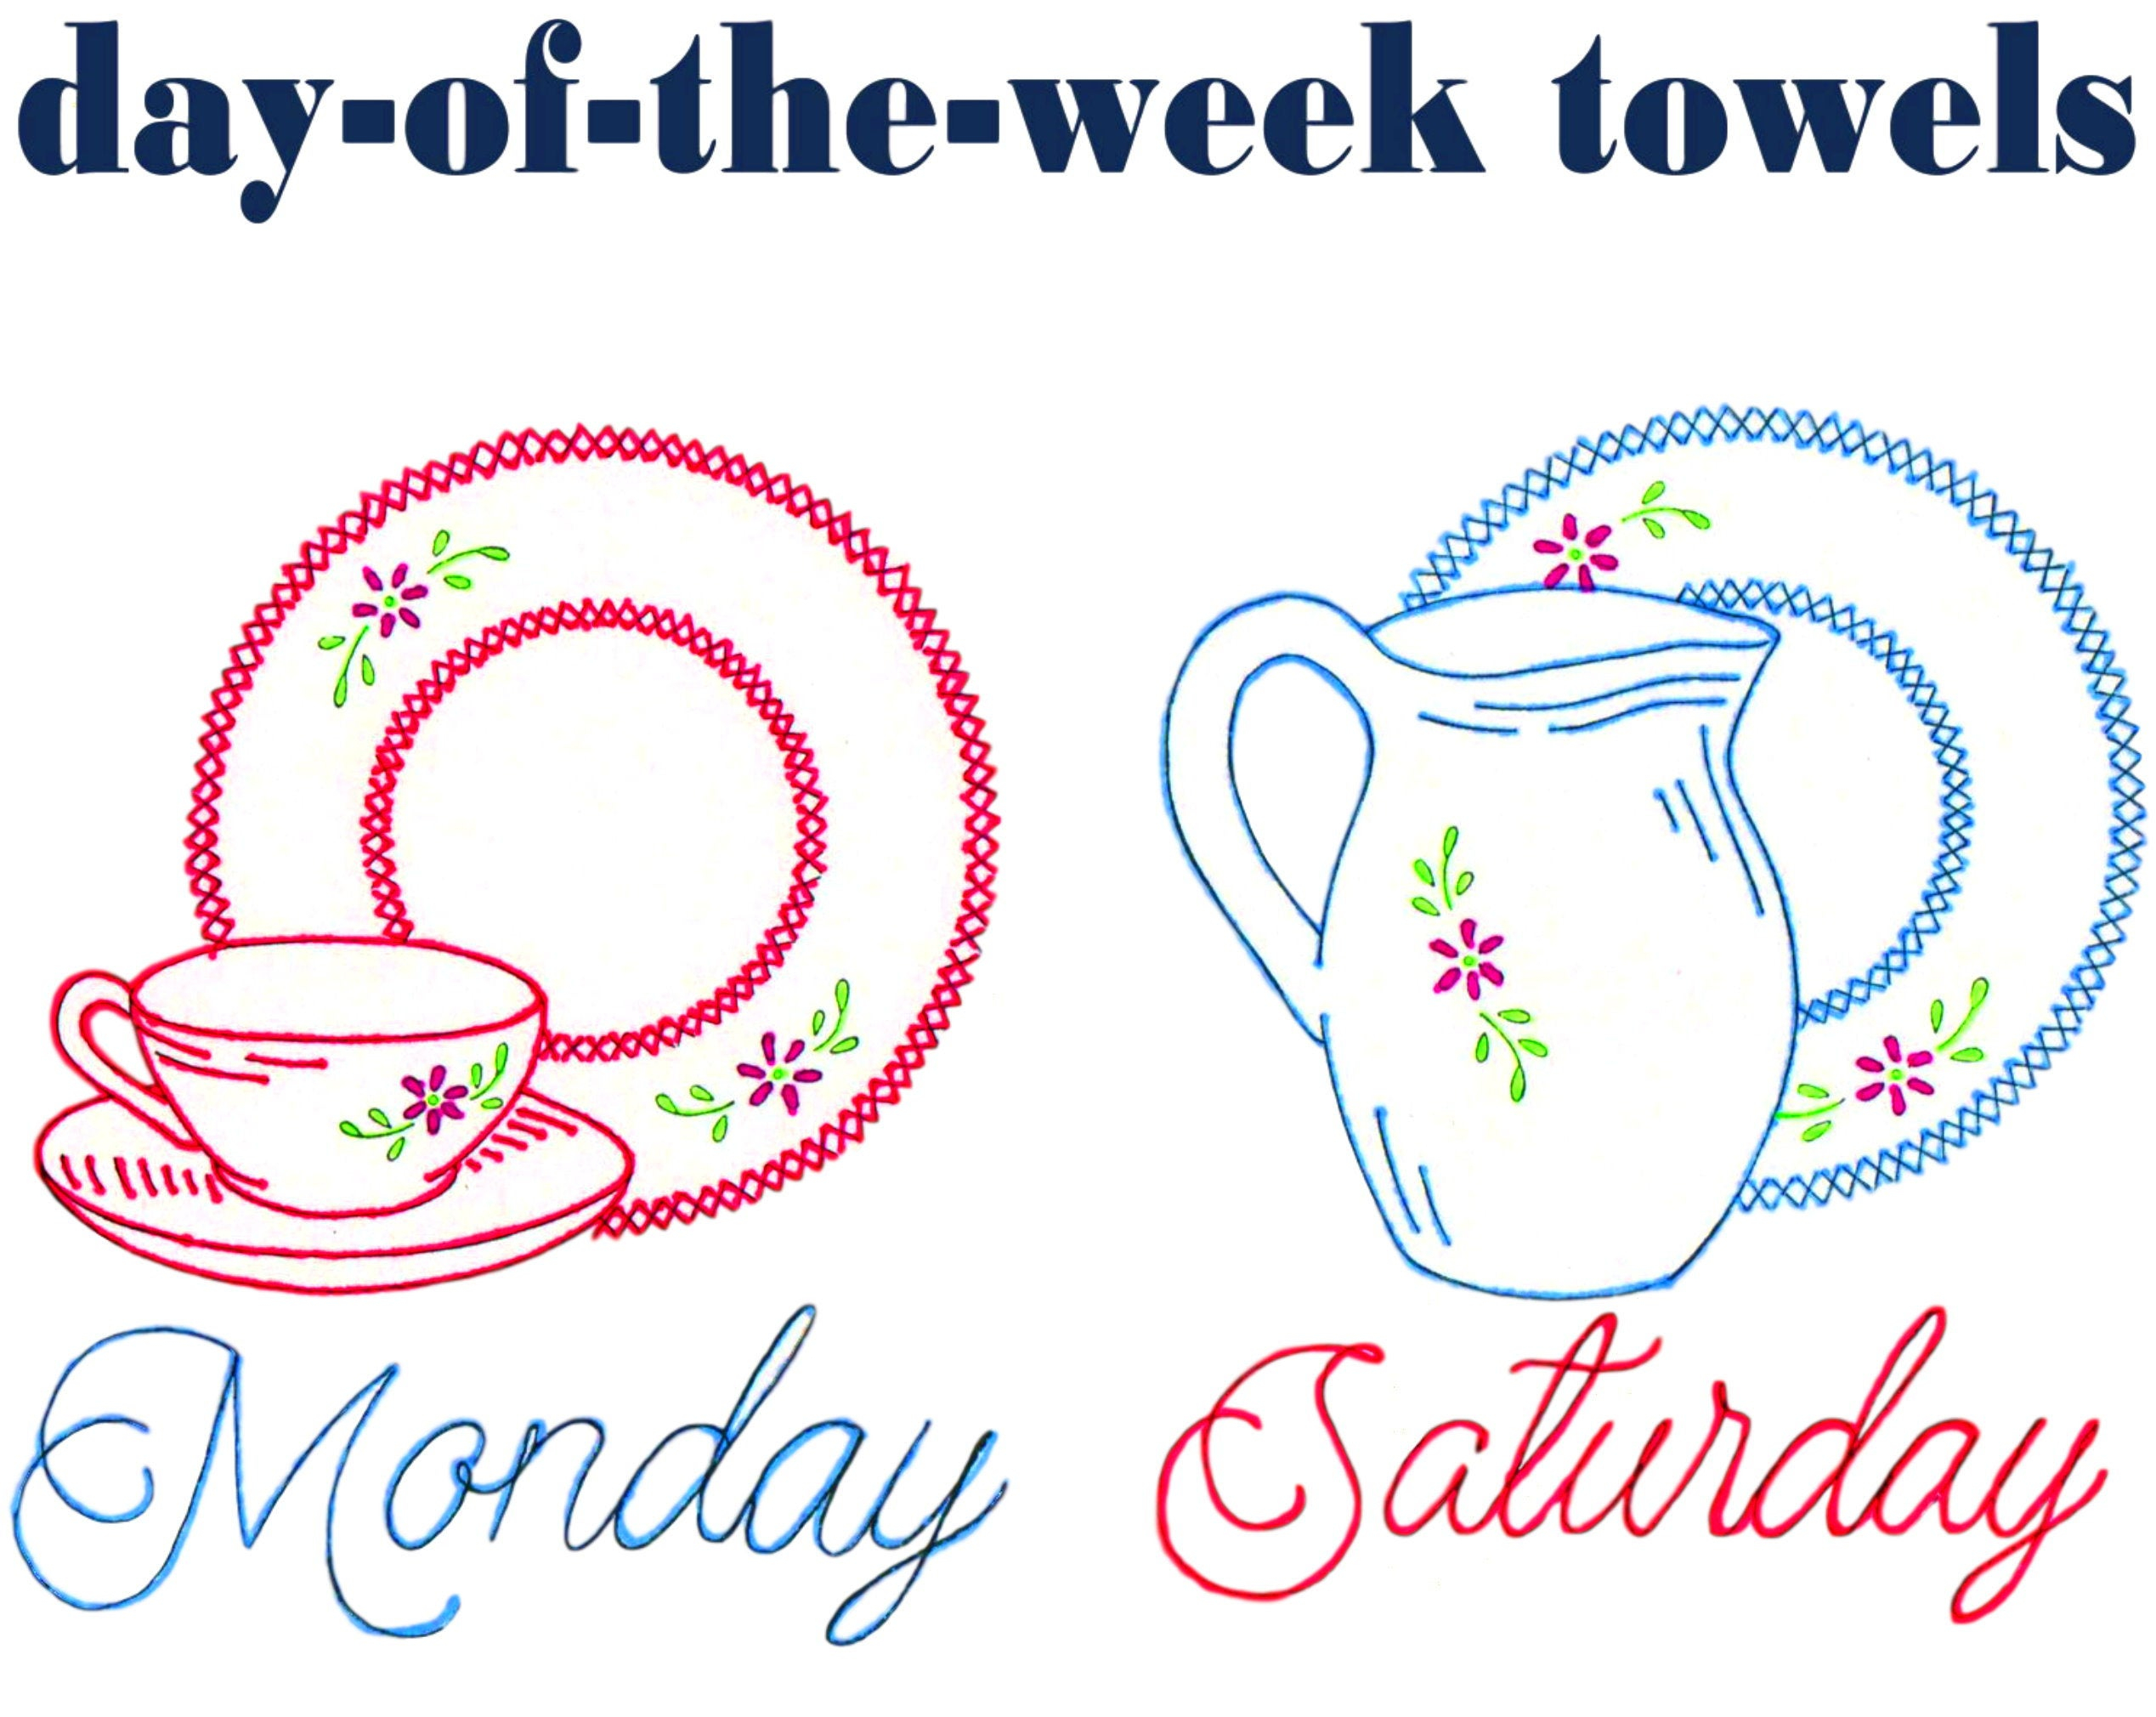 Kitchen Towel Embroidery Patterns Embroidery Dishes Tea Towel Designs Day Of The Week Towels Pdf Download Vintage Embroidery Designs Cross Stitch Dishes Flour Sack Towels